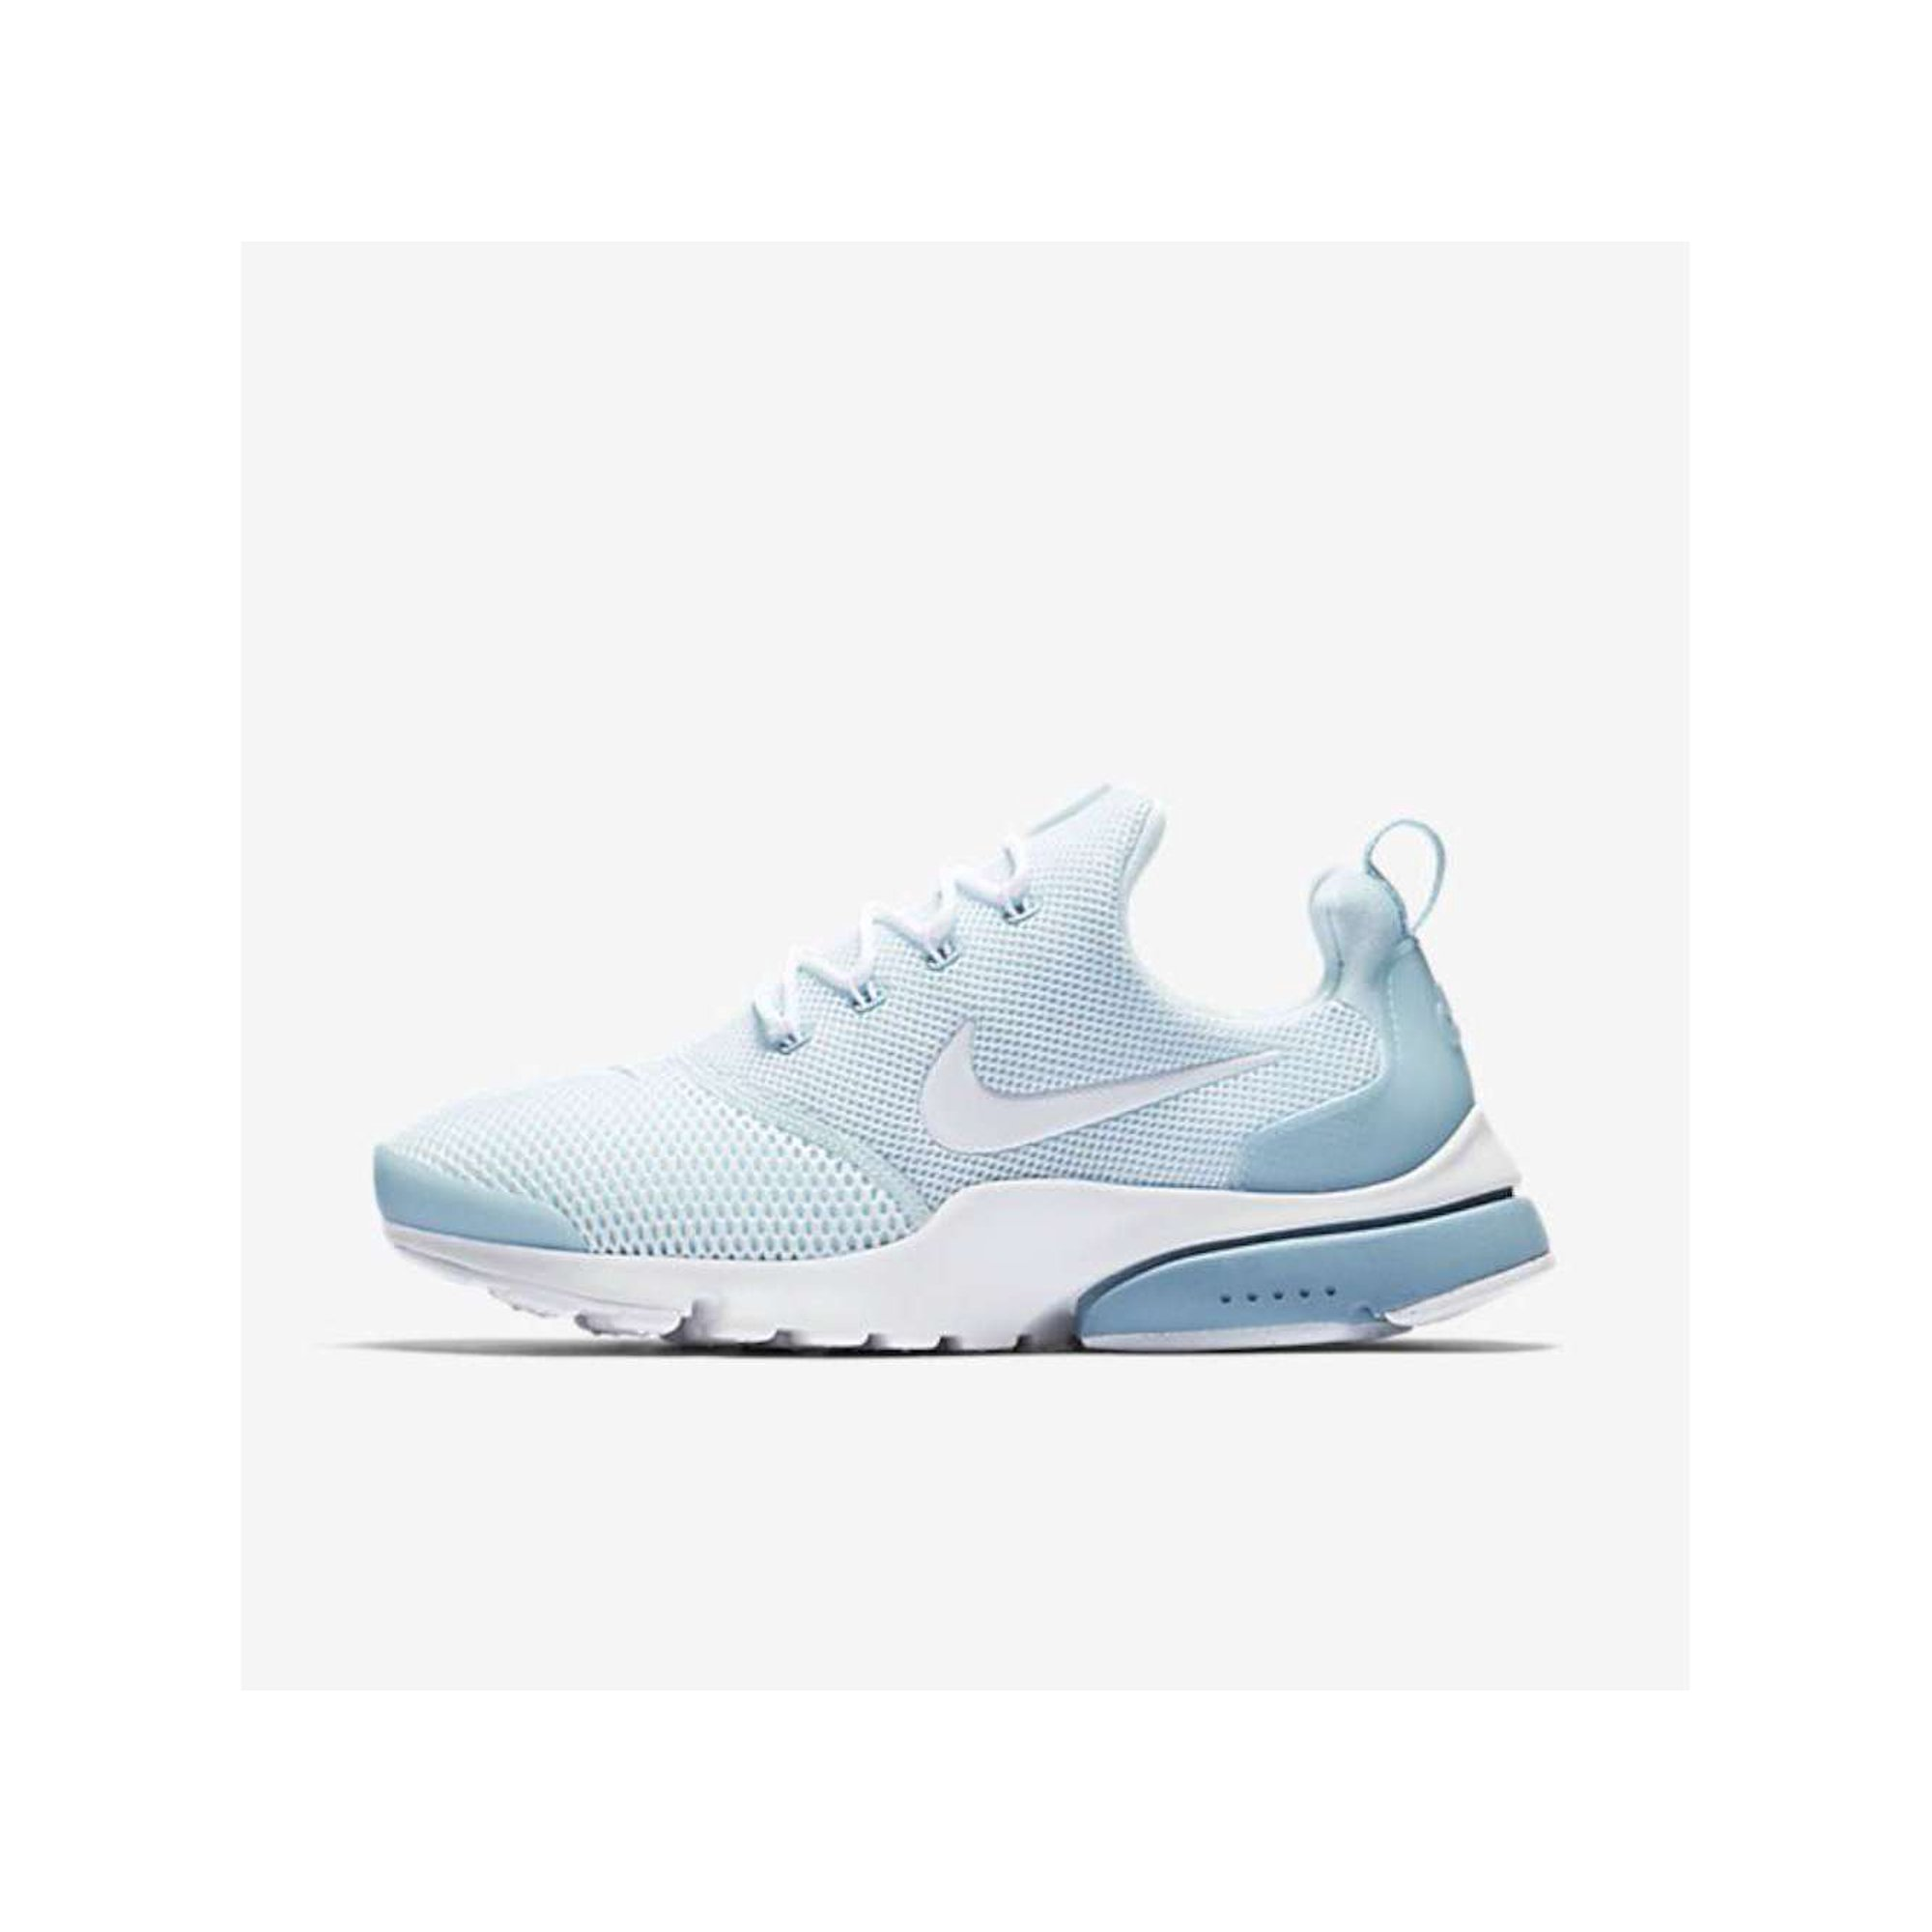 the latest 02d94 fee6a Nike Womens Presto Fly Low Top Lace Up Running Sneaker ...